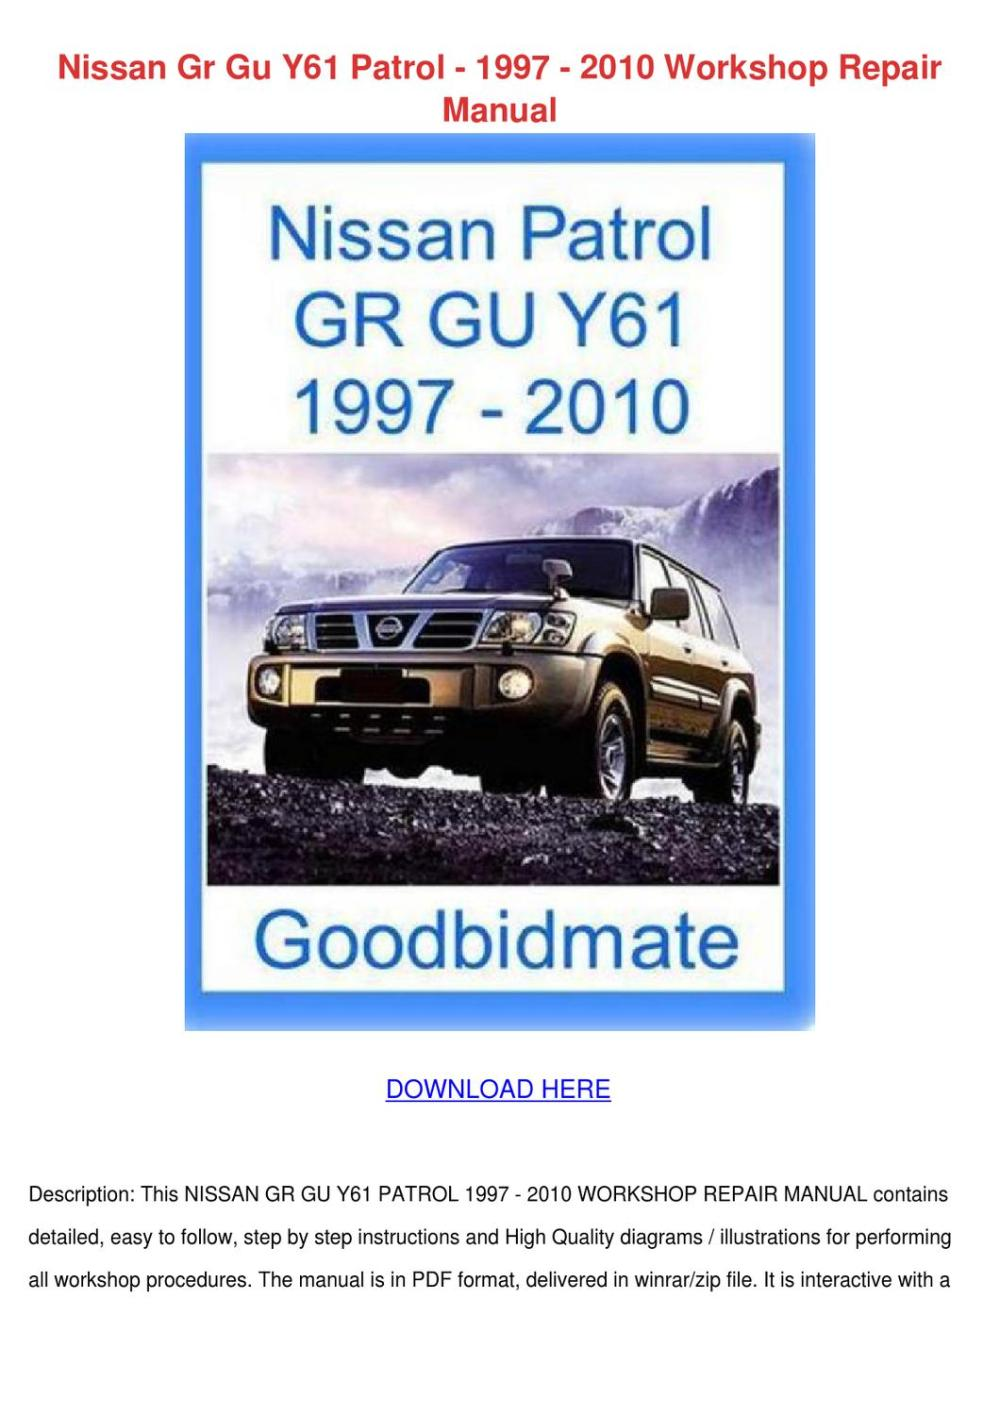 medium resolution of nissan gr gu y61 patrol 1997 2010 workshop re by jordanherr issuunissan y61 wiring diagram